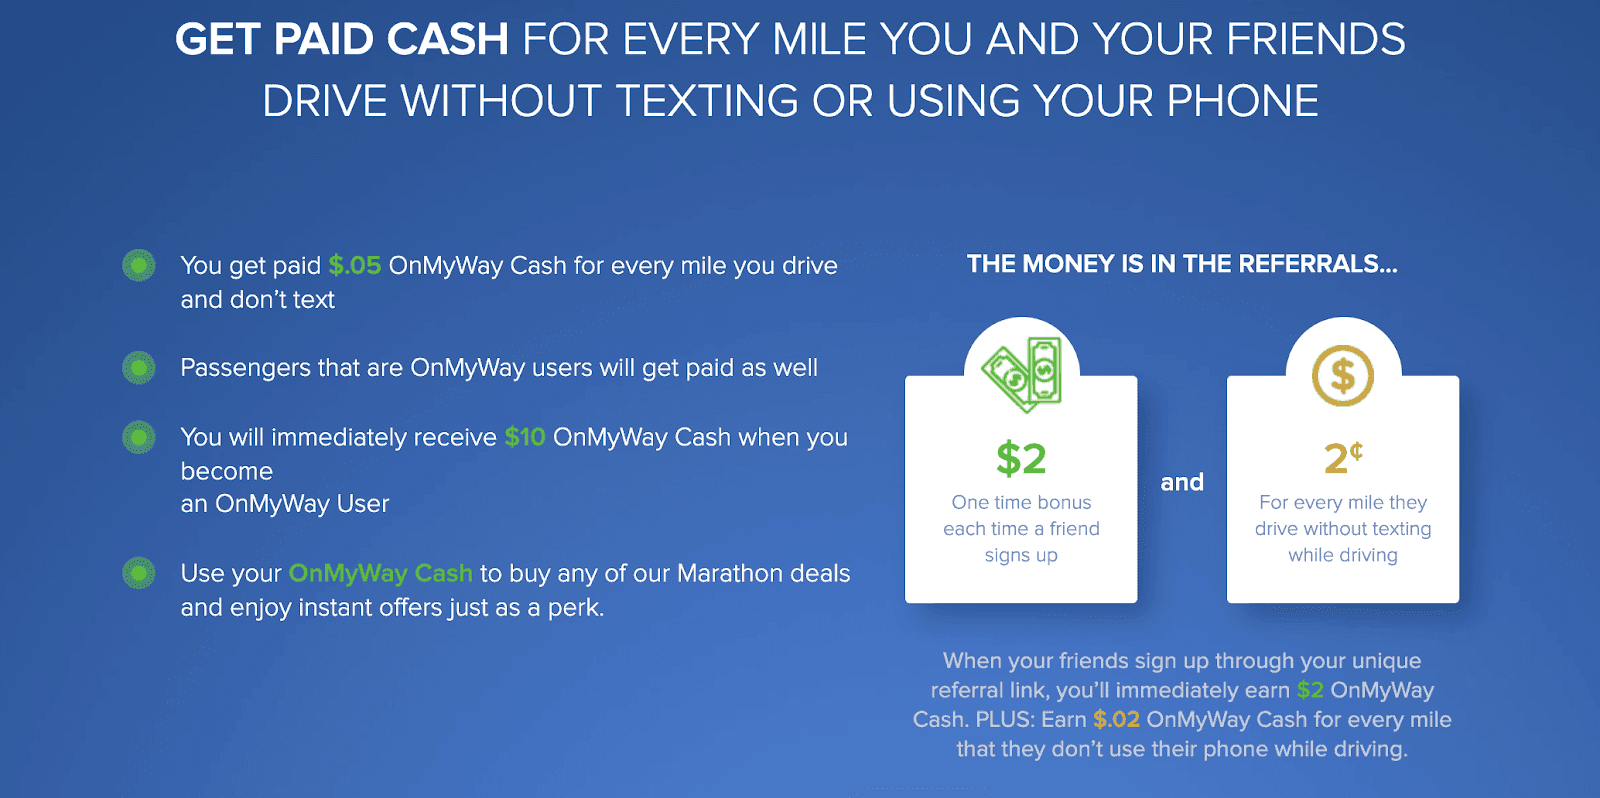 OnMyWay App Does Not Pay Cash